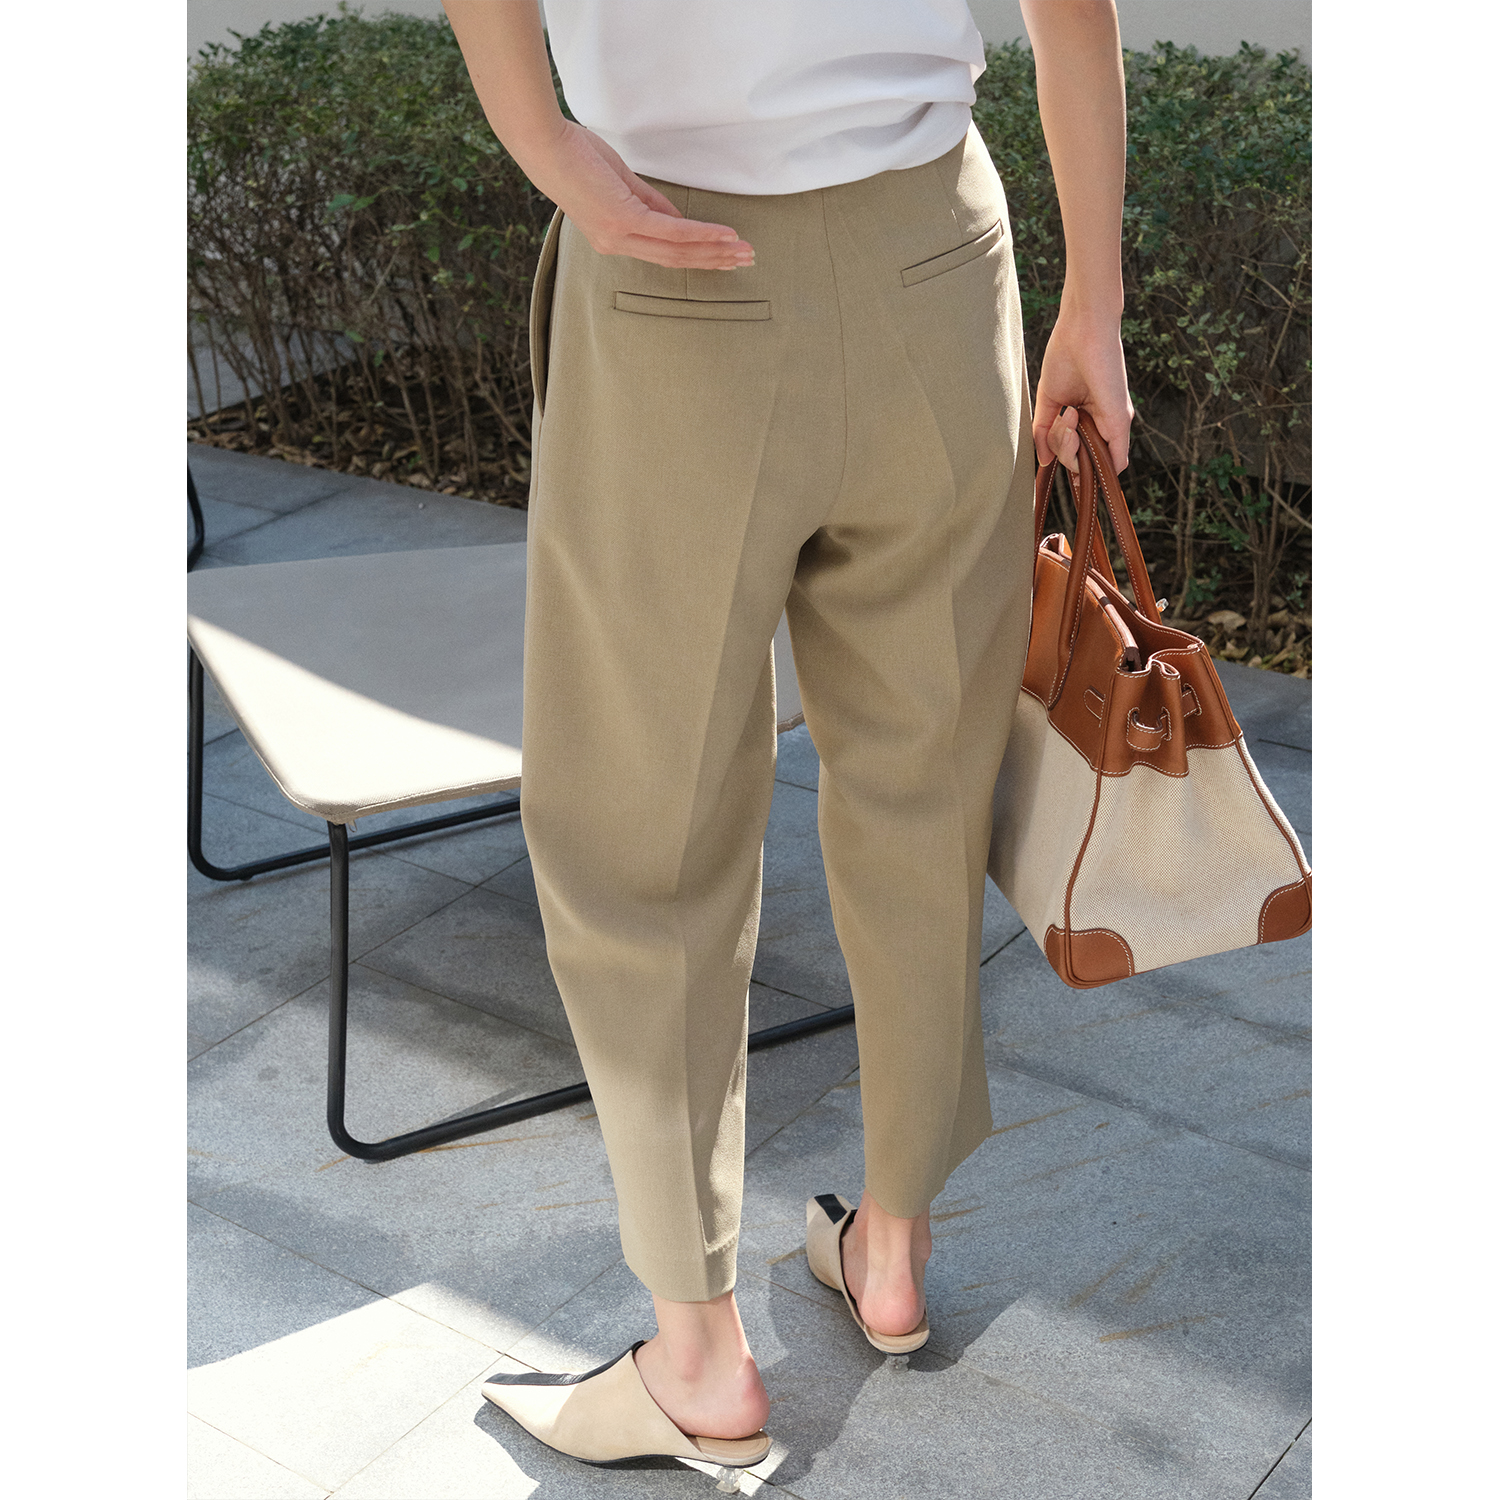 MRS Studios early spring new wild pants show thin high-waisted three-dimensional tapered nine-point suit pants